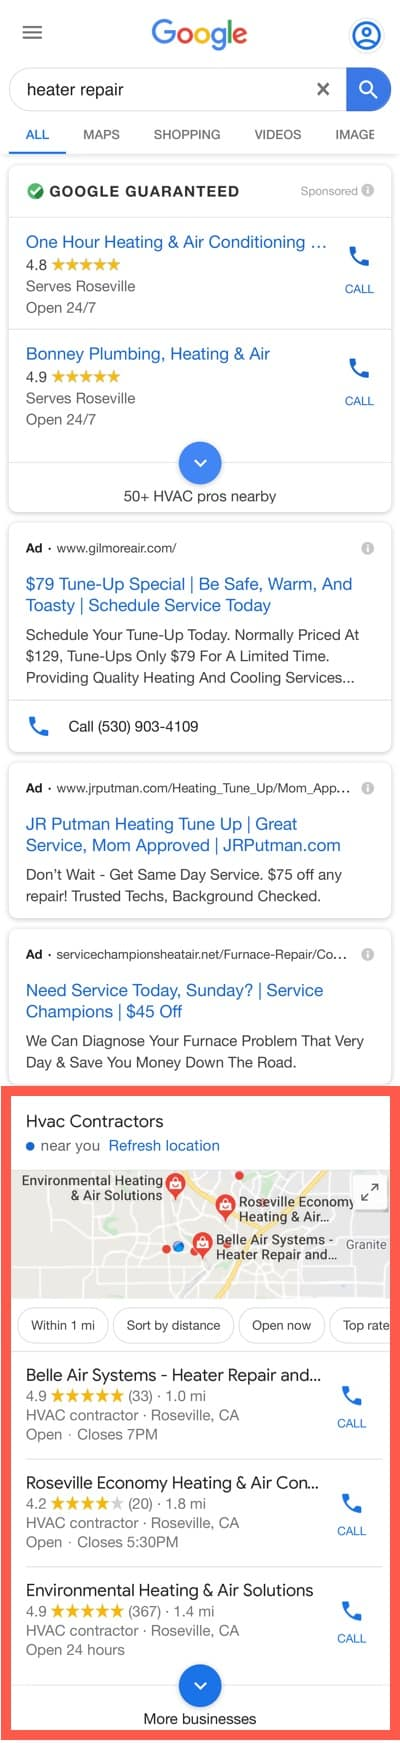 Google mobile search for heater repair.